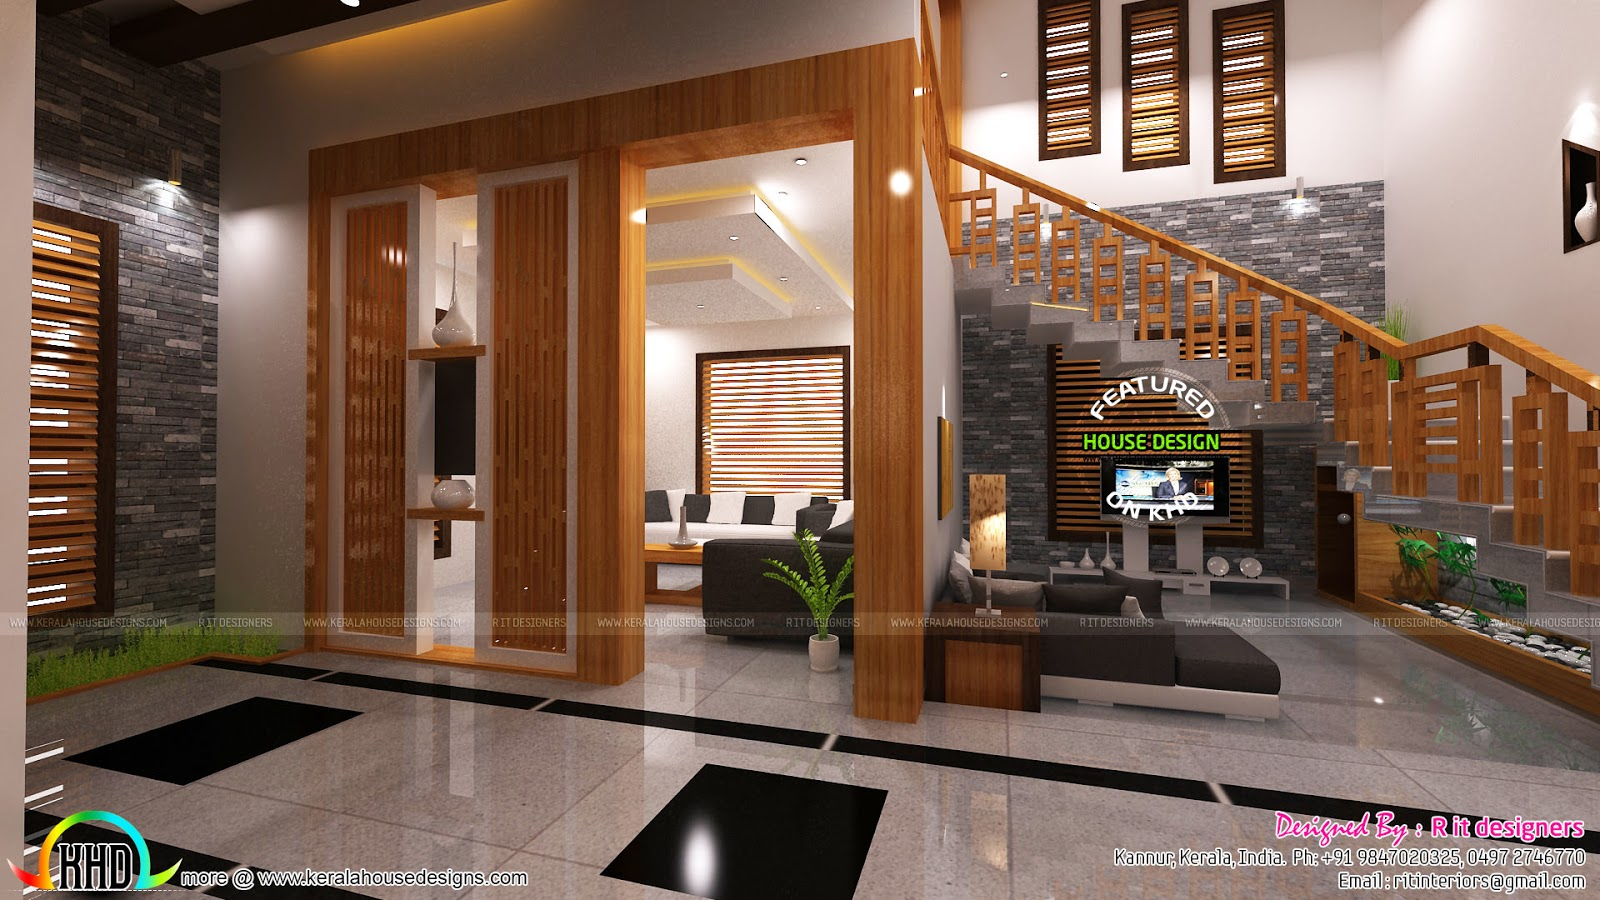 living foyer under stair interiors kerala home design and floor plans. Black Bedroom Furniture Sets. Home Design Ideas